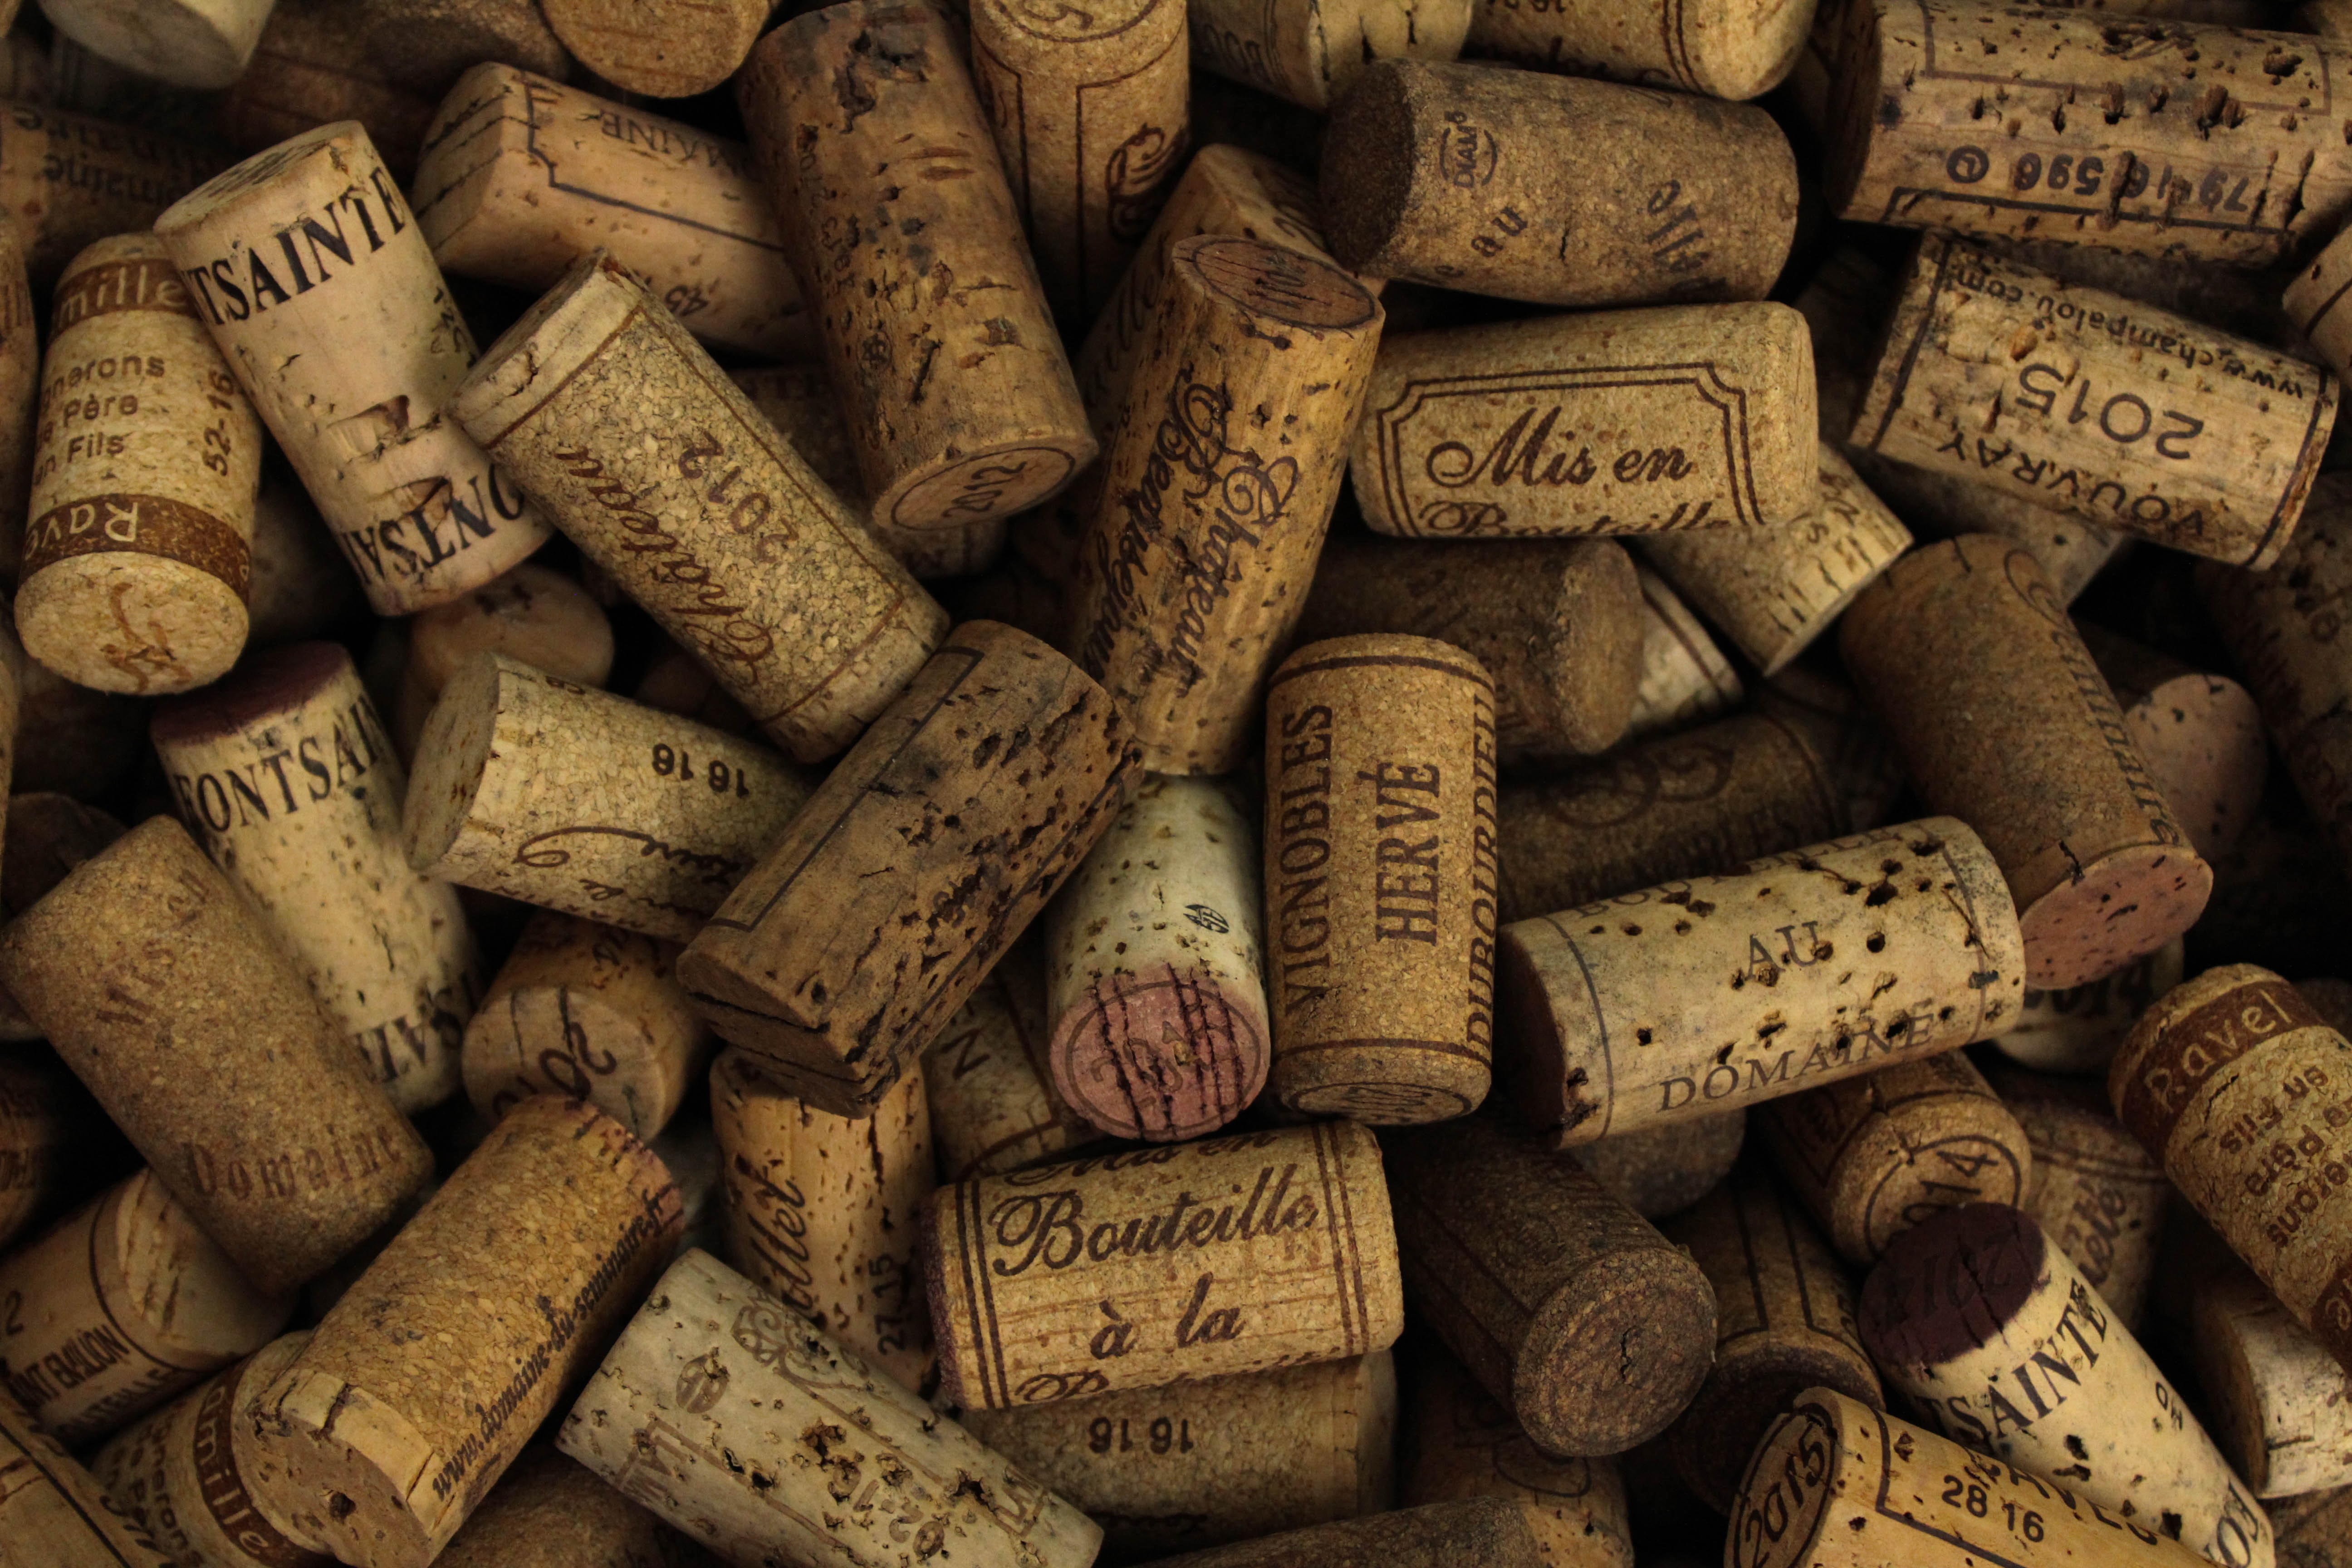 A pile of used barrel corks. Good closures help limit oxidation in the bottle.